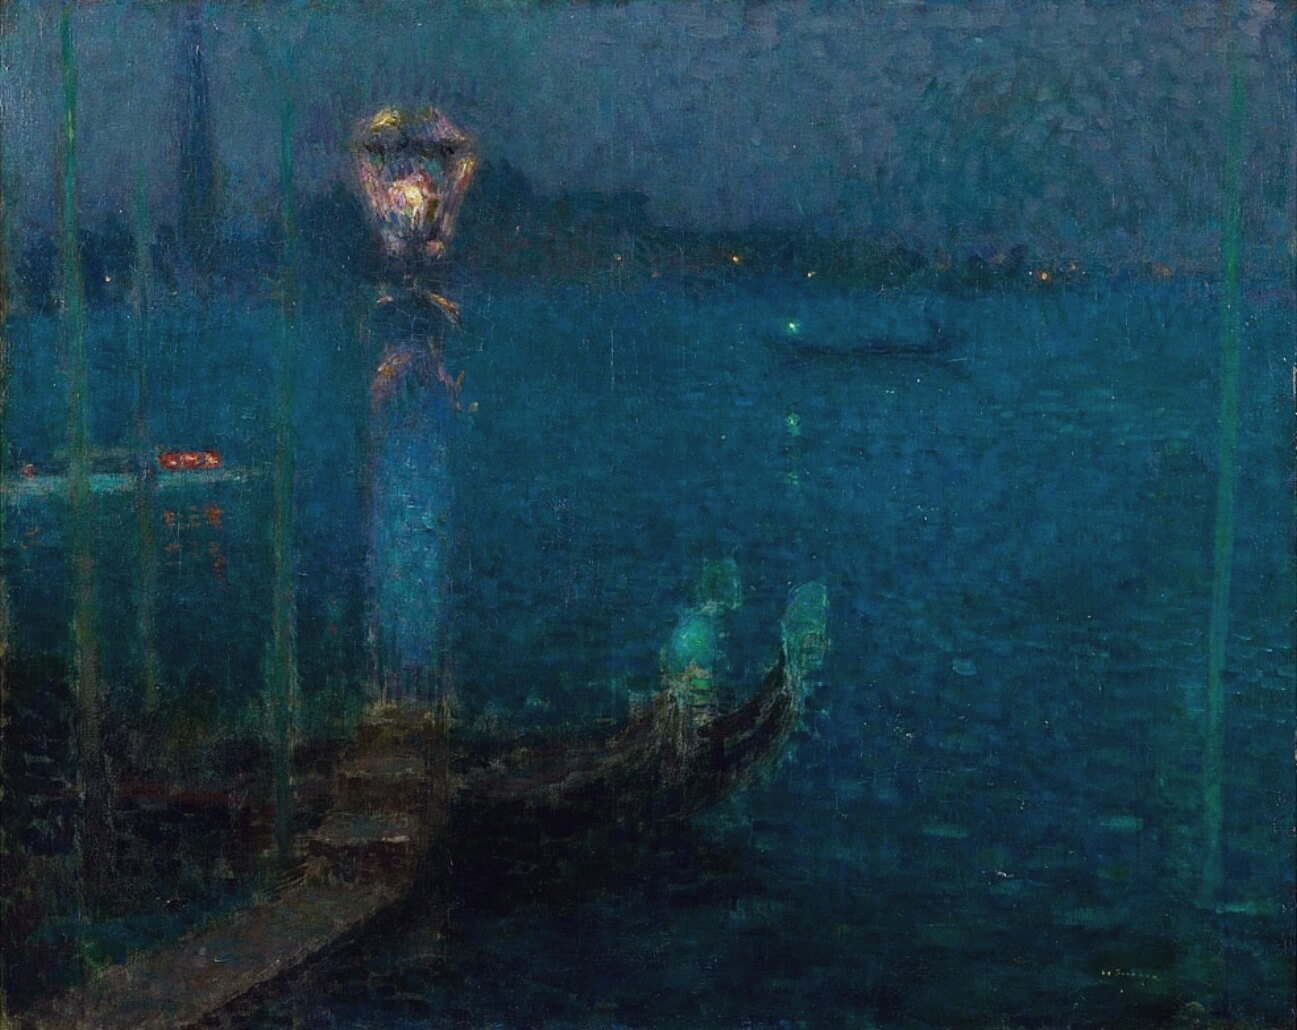 Henry Le Sidaner. Blue Night, the Bank of Gaz, 1908